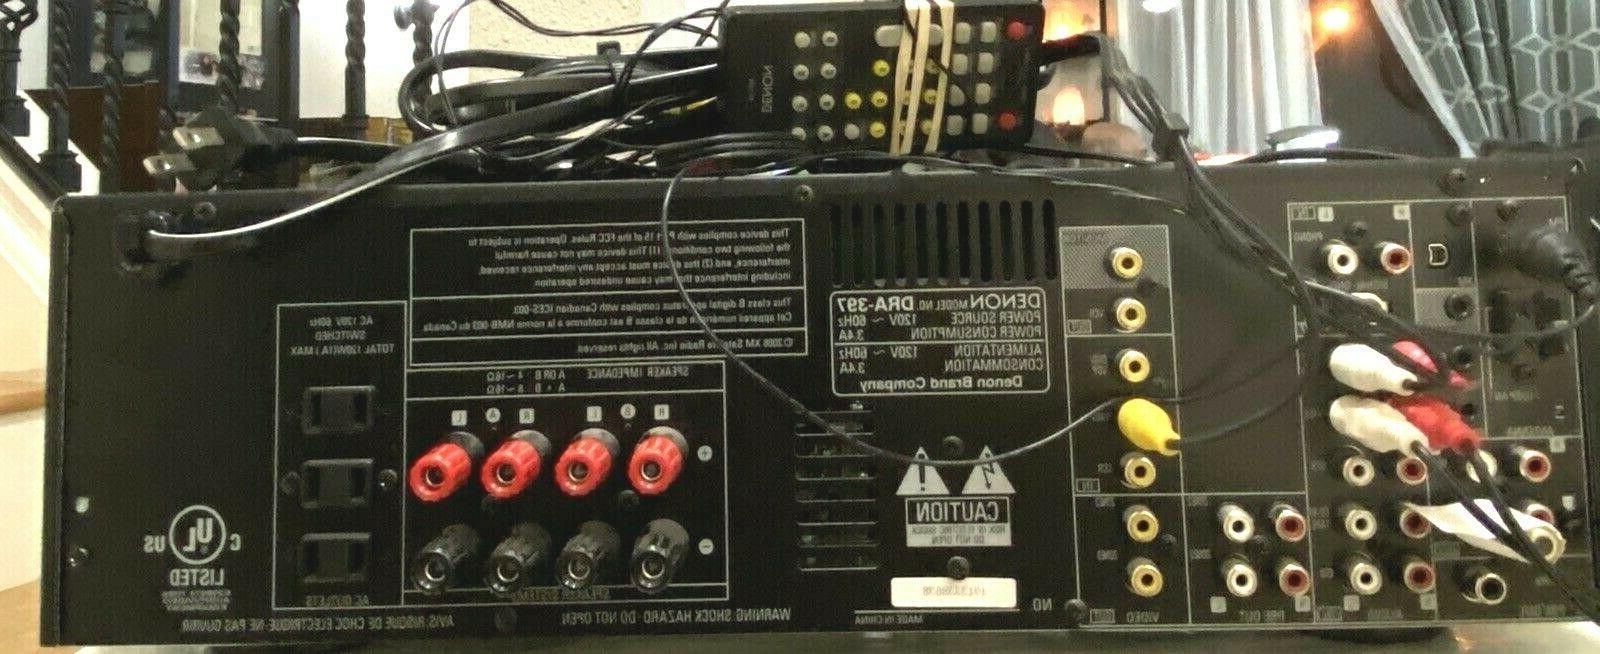 2001 Audio With Turntable Up PHON